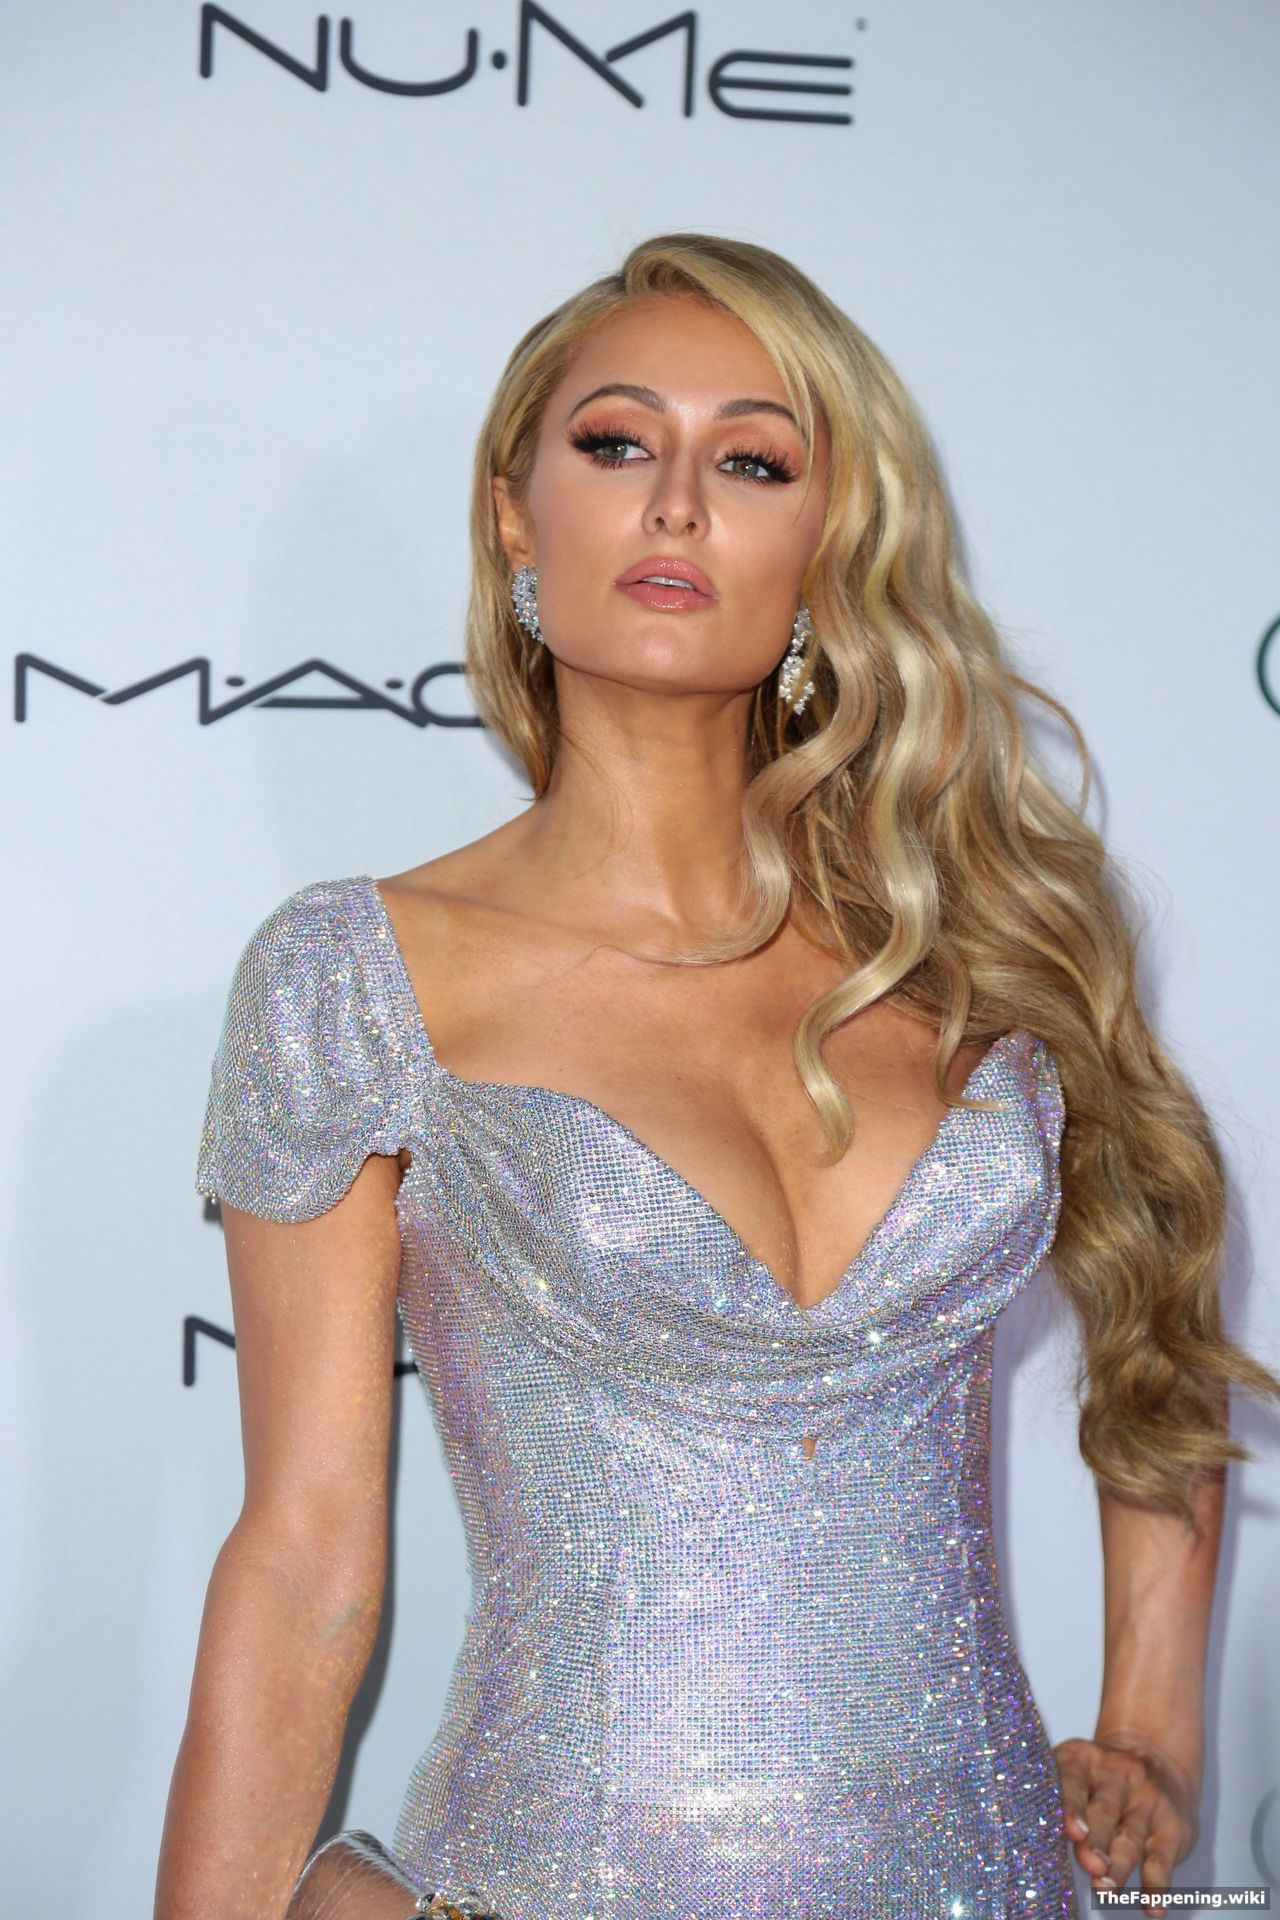 TheFappening Paris Hilton nudes (12 photo), Pussy, Sideboobs, Instagram, butt 2020